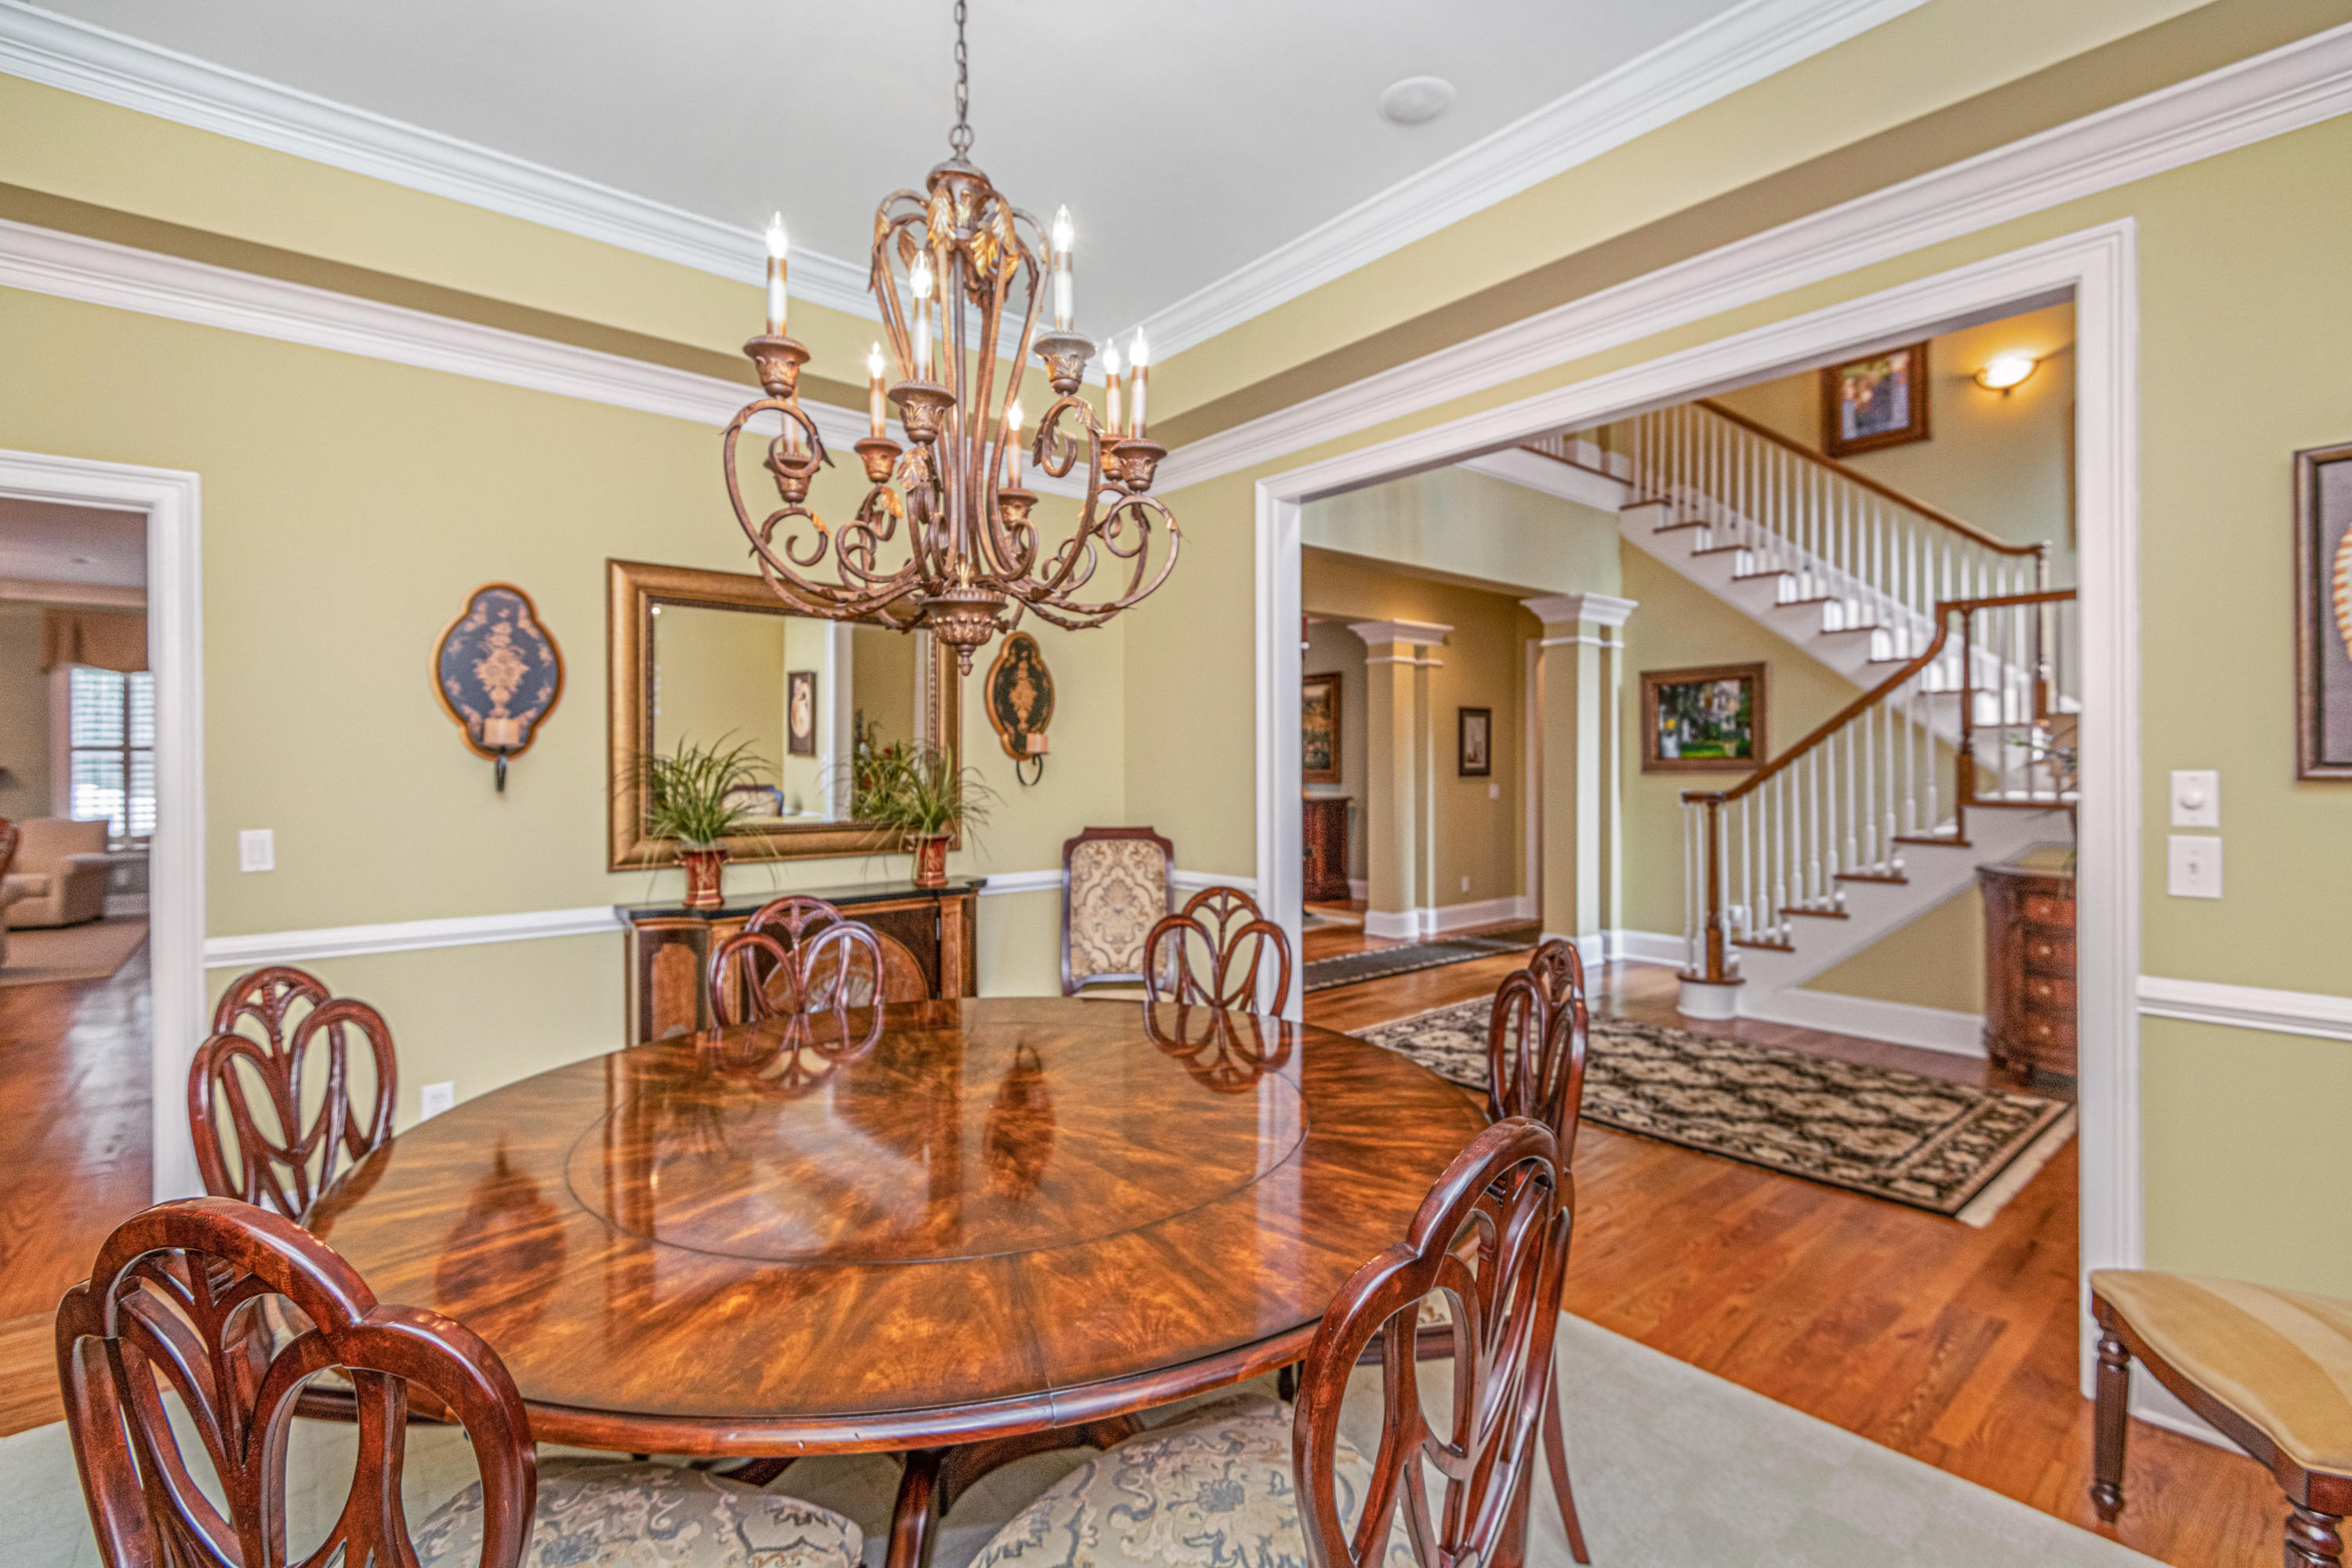 Dunes West Homes For Sale - 1837 Shell Ring, Mount Pleasant, SC - 16